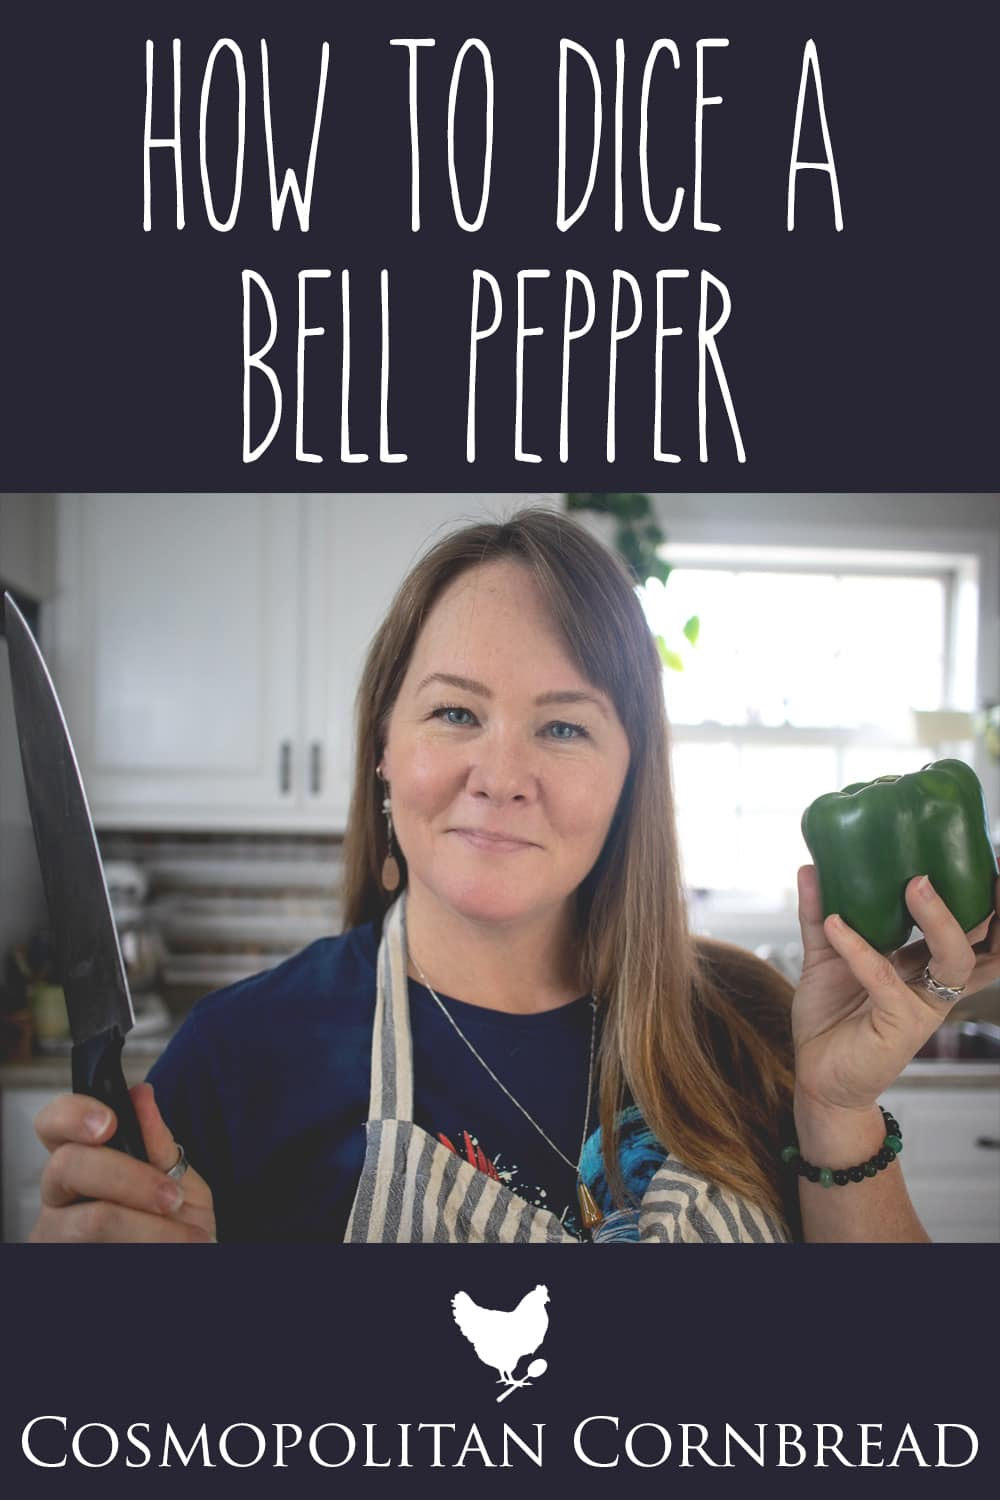 Dicing a pepper doesn't need to be a challenge. Learn to do it with this simple tutorial on how to dice a bell pepper with ease.